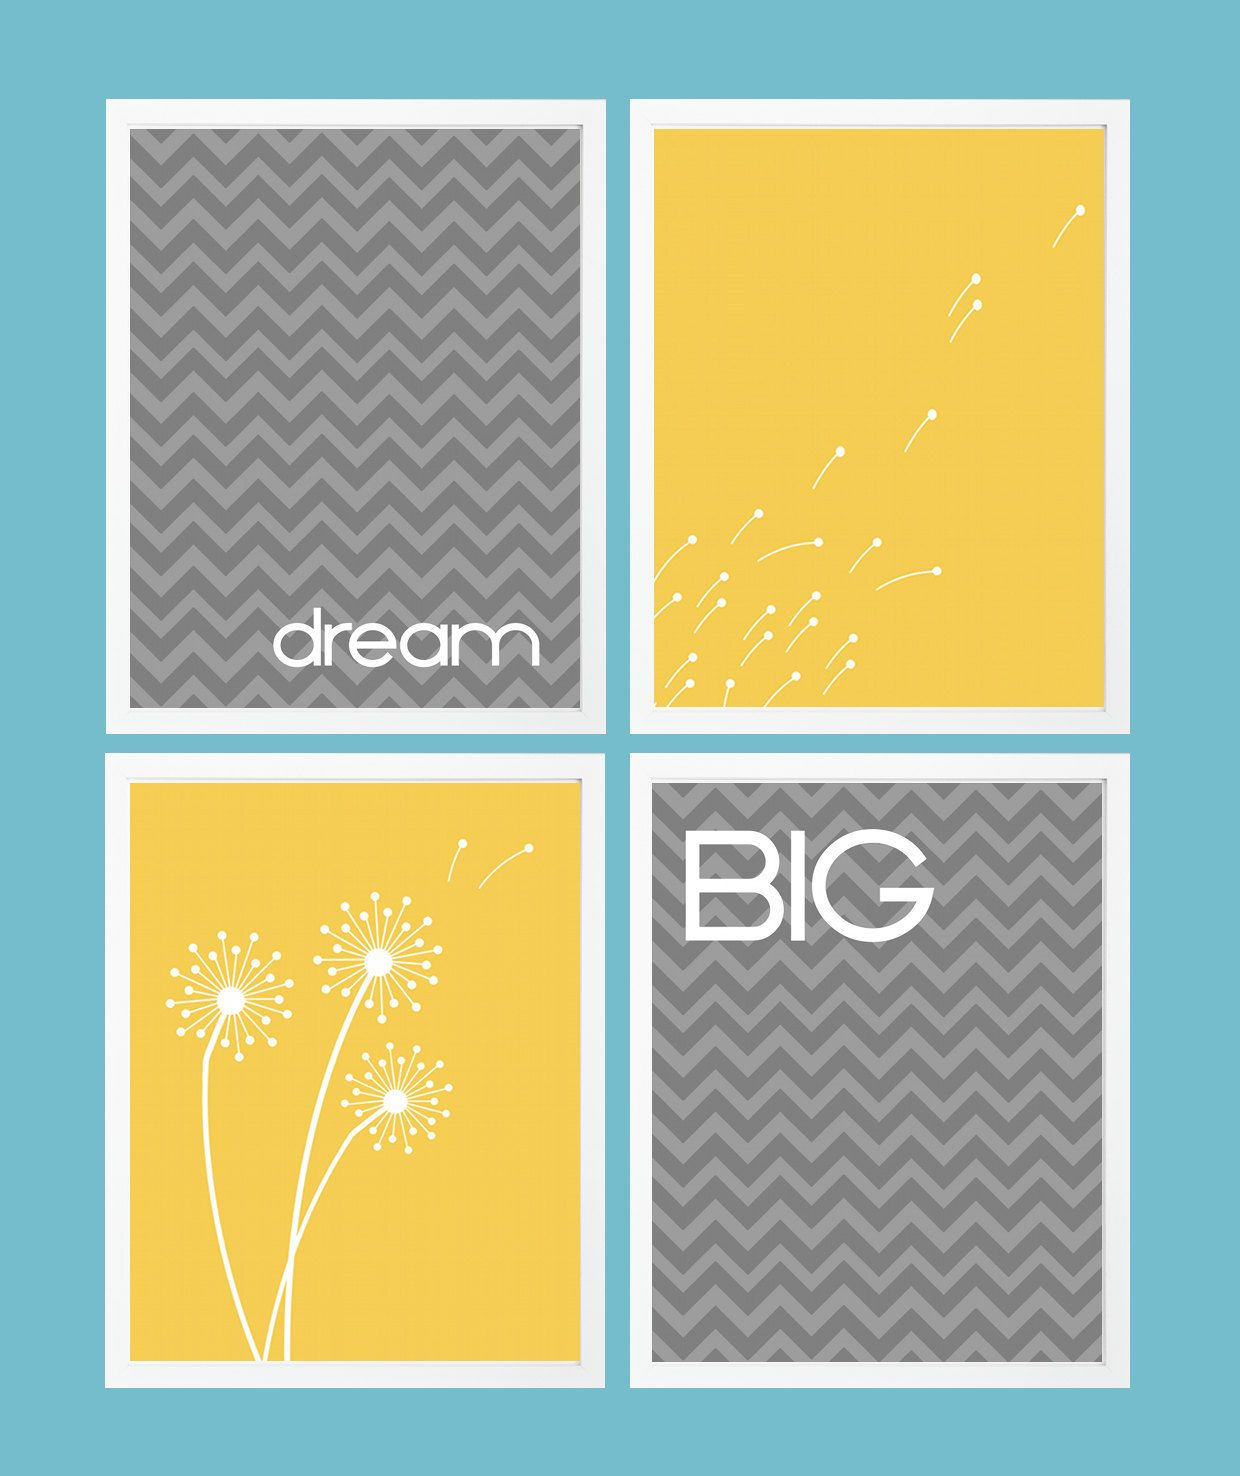 Dandelion Wall Art Modern Dream Big Custom Design: Set of 4 Prints ...